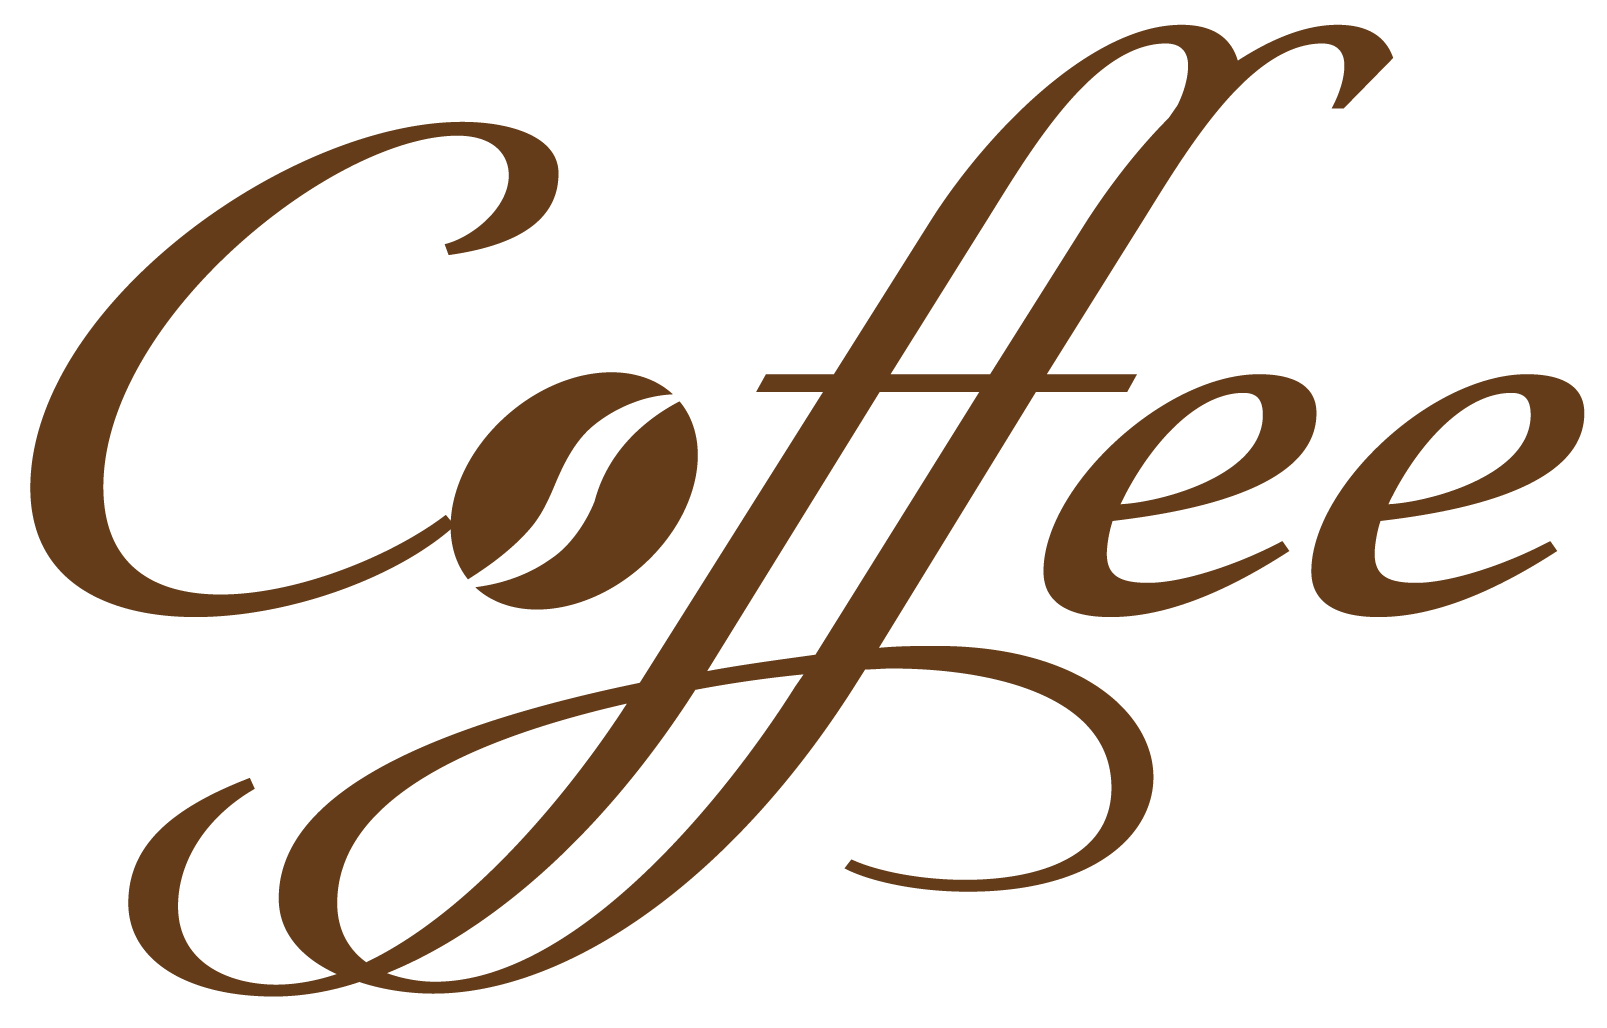 Coffee decorative text png. Win clipart kitchen window